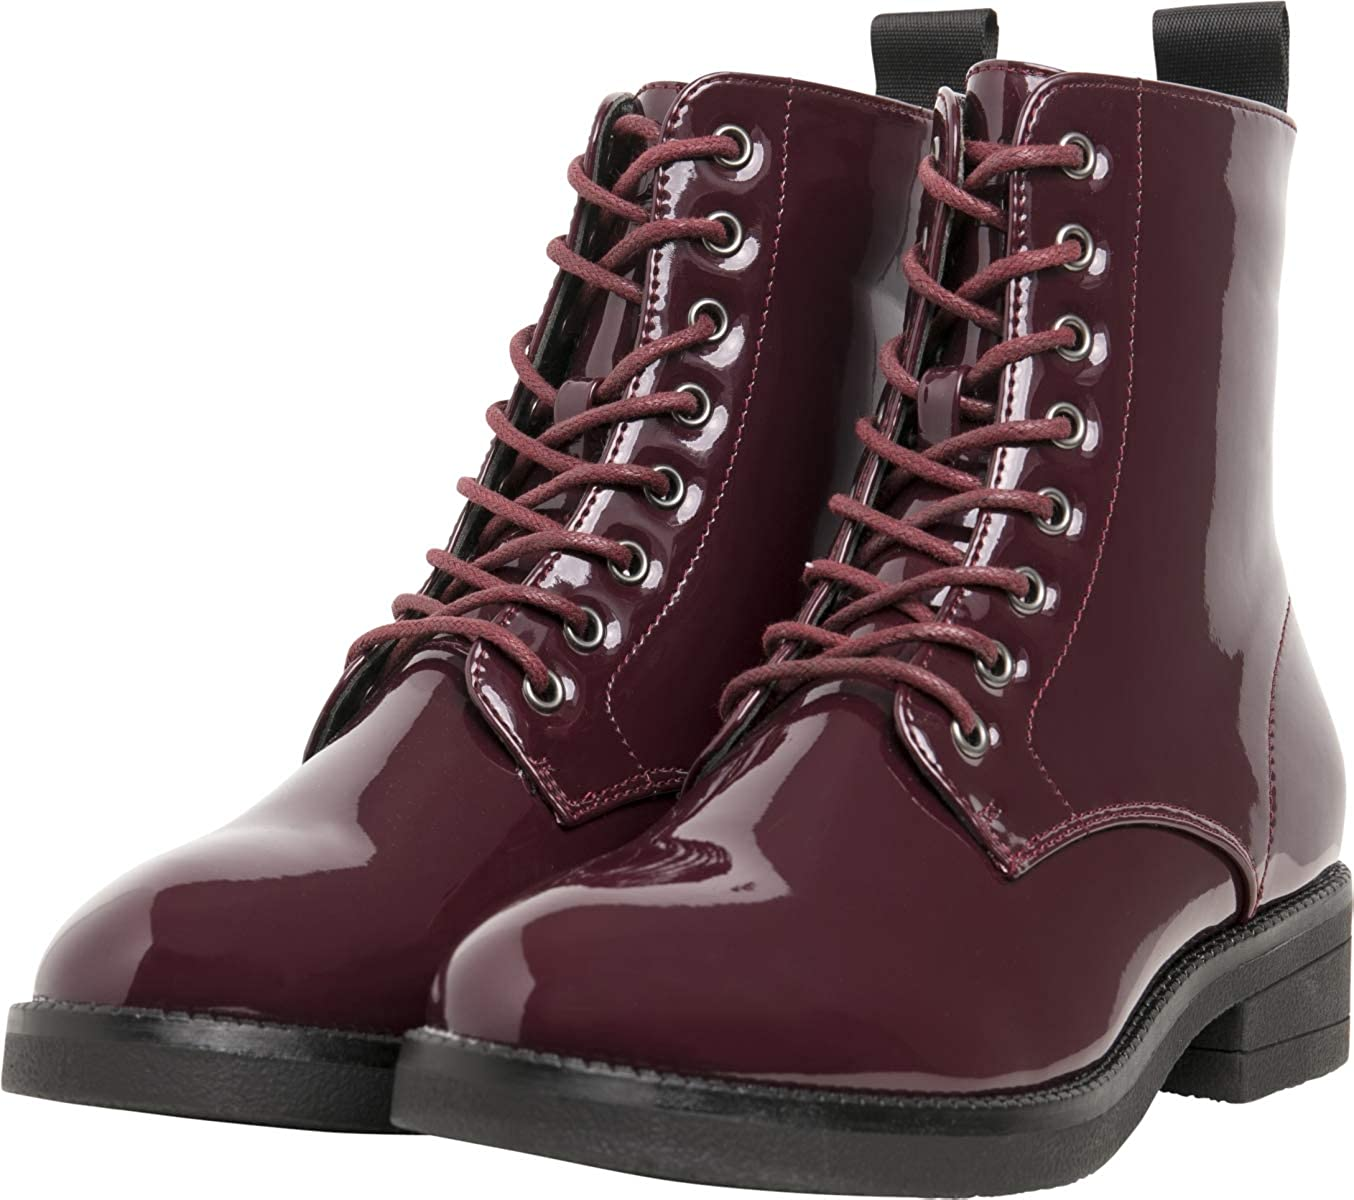 Over item handling Max 86% OFF Urban Classics Women's Boots Ankle Classic